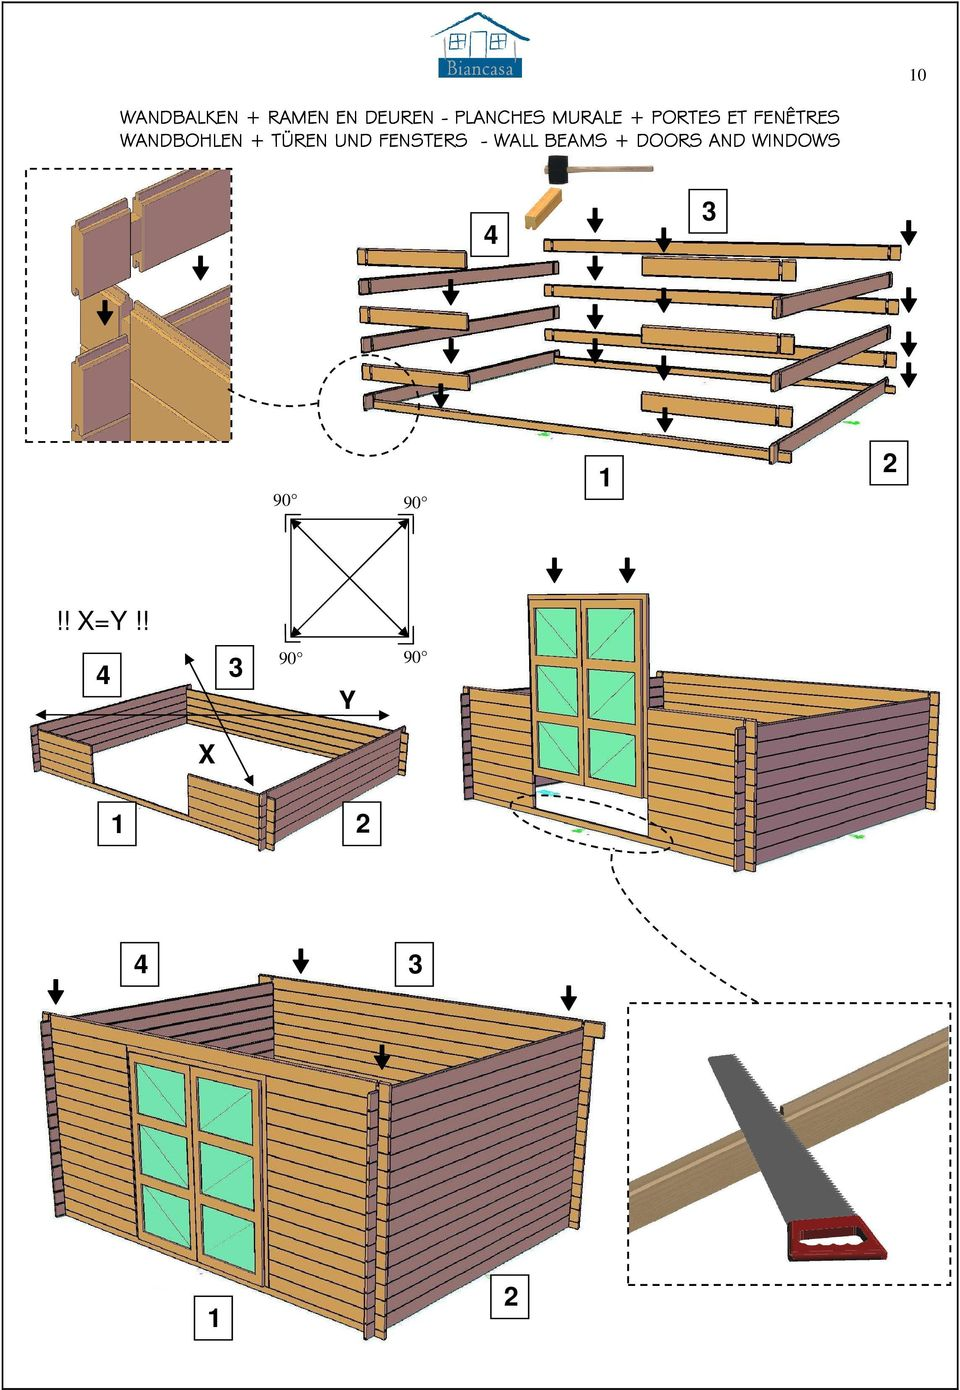 TÜREN UND FENSTERS - WALL BEAMS + DOORS AND